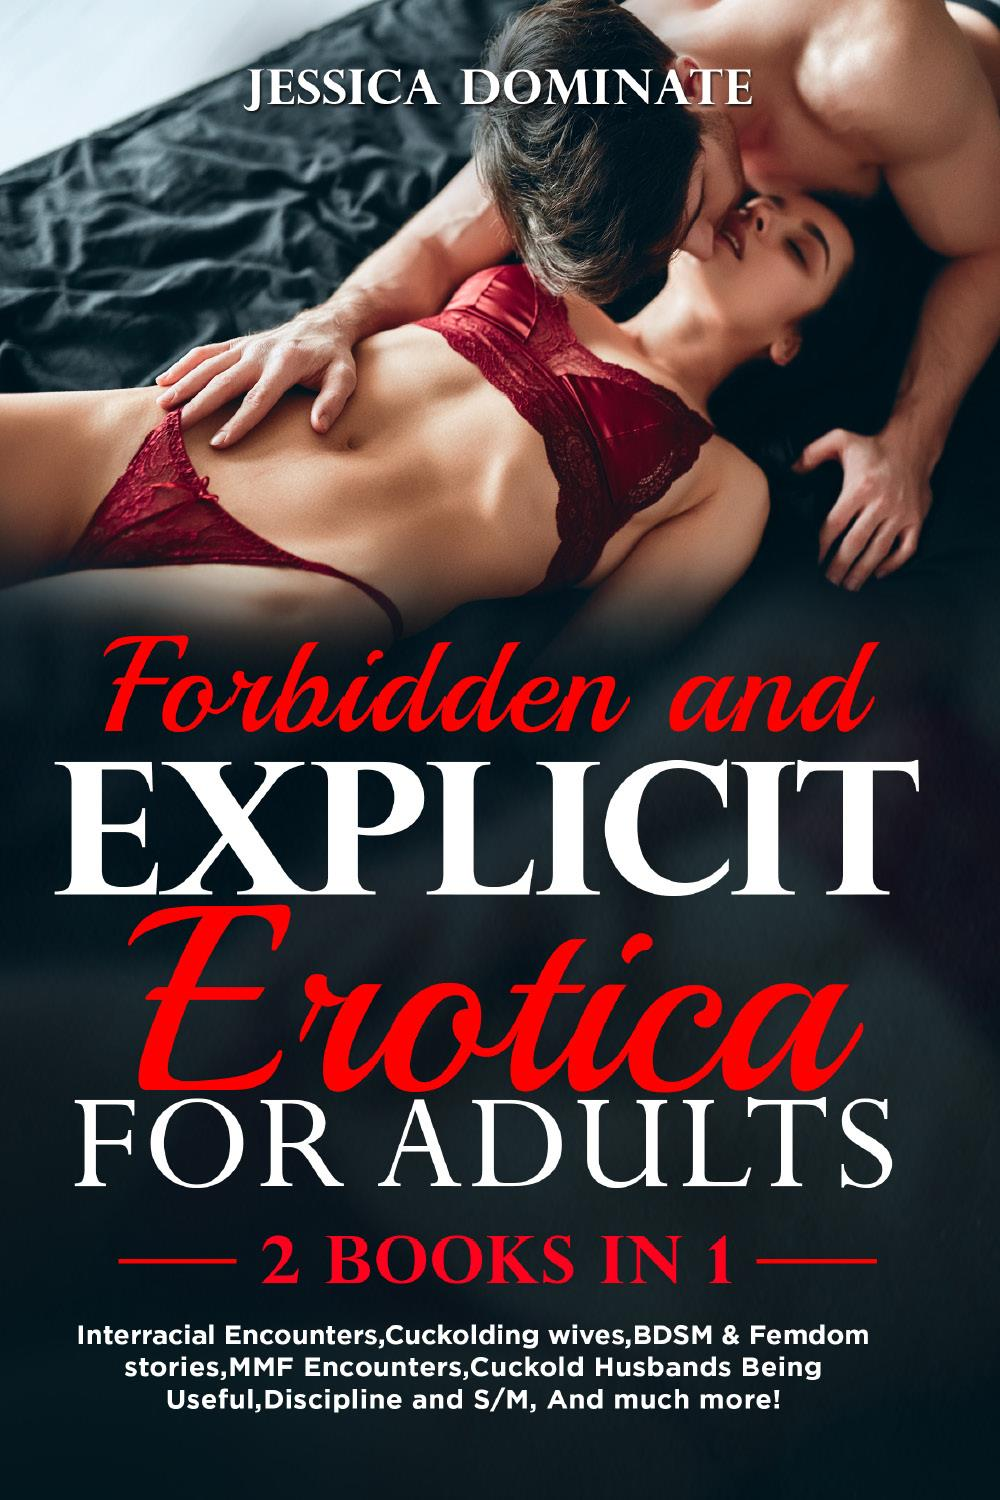 Forbidden and Explicit Erotica for Adults (2 Books in 1). Interracial Encounters,Cuckolding wives,BDSM & Femdom stories,MMF Encounters,Cuckold Husbands Being Useful,Discipline and S/M, And much more!